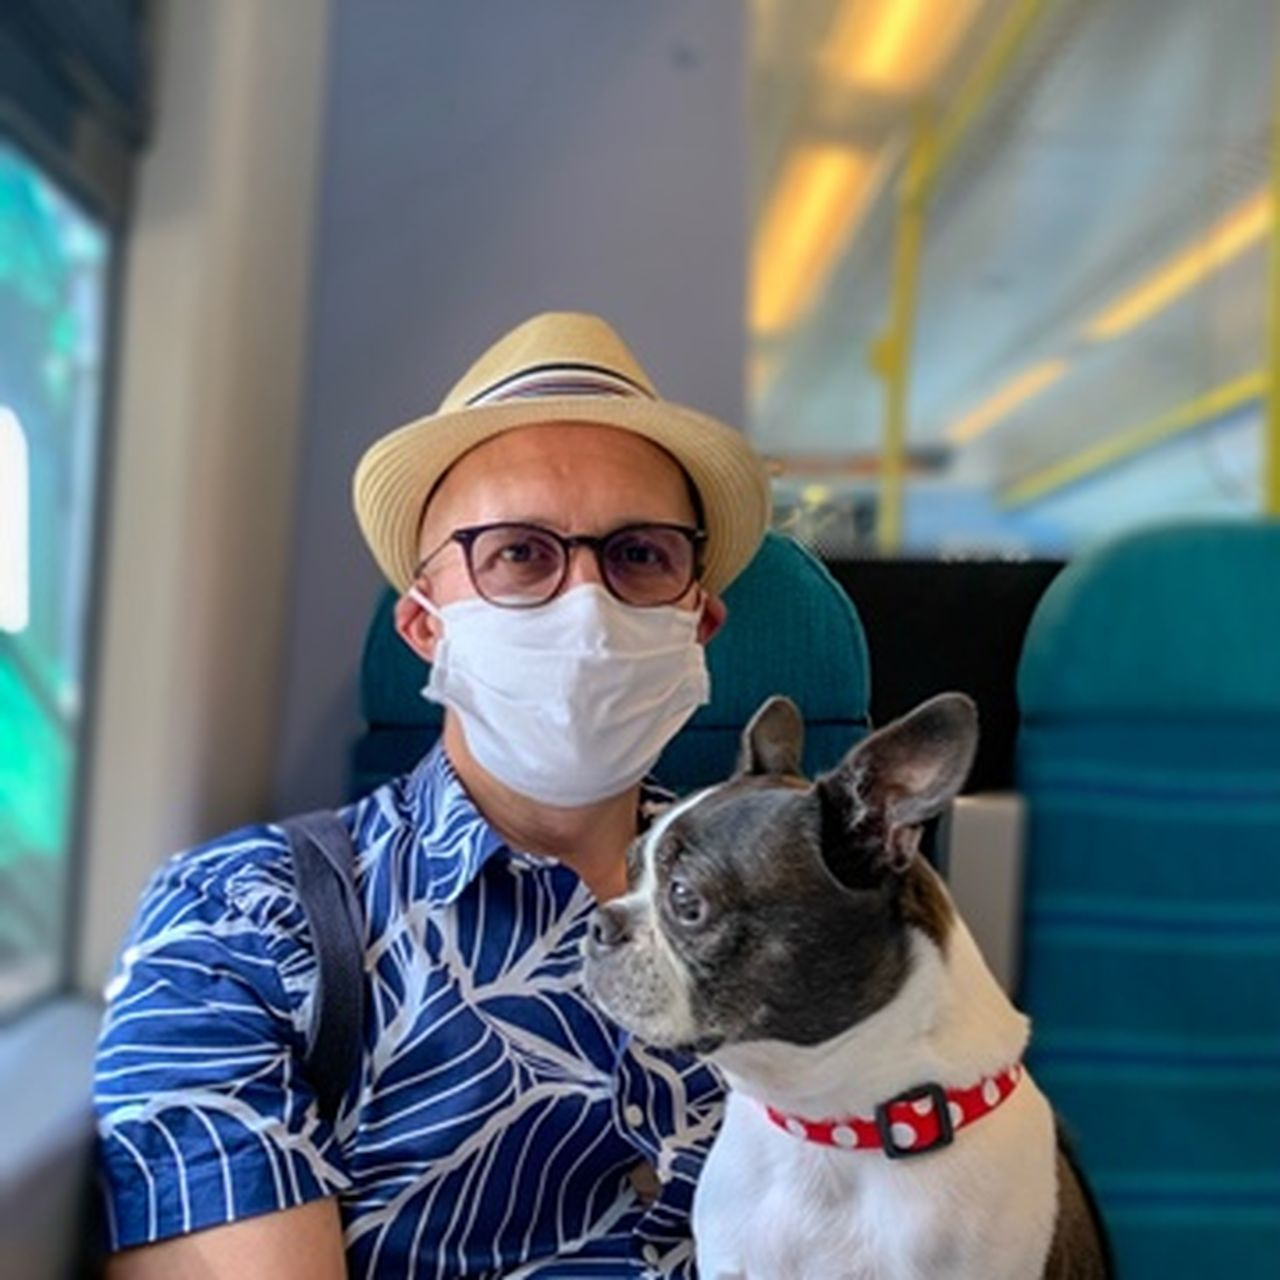 PORTRAIT OF MAN WITH DOG WEARING MASK